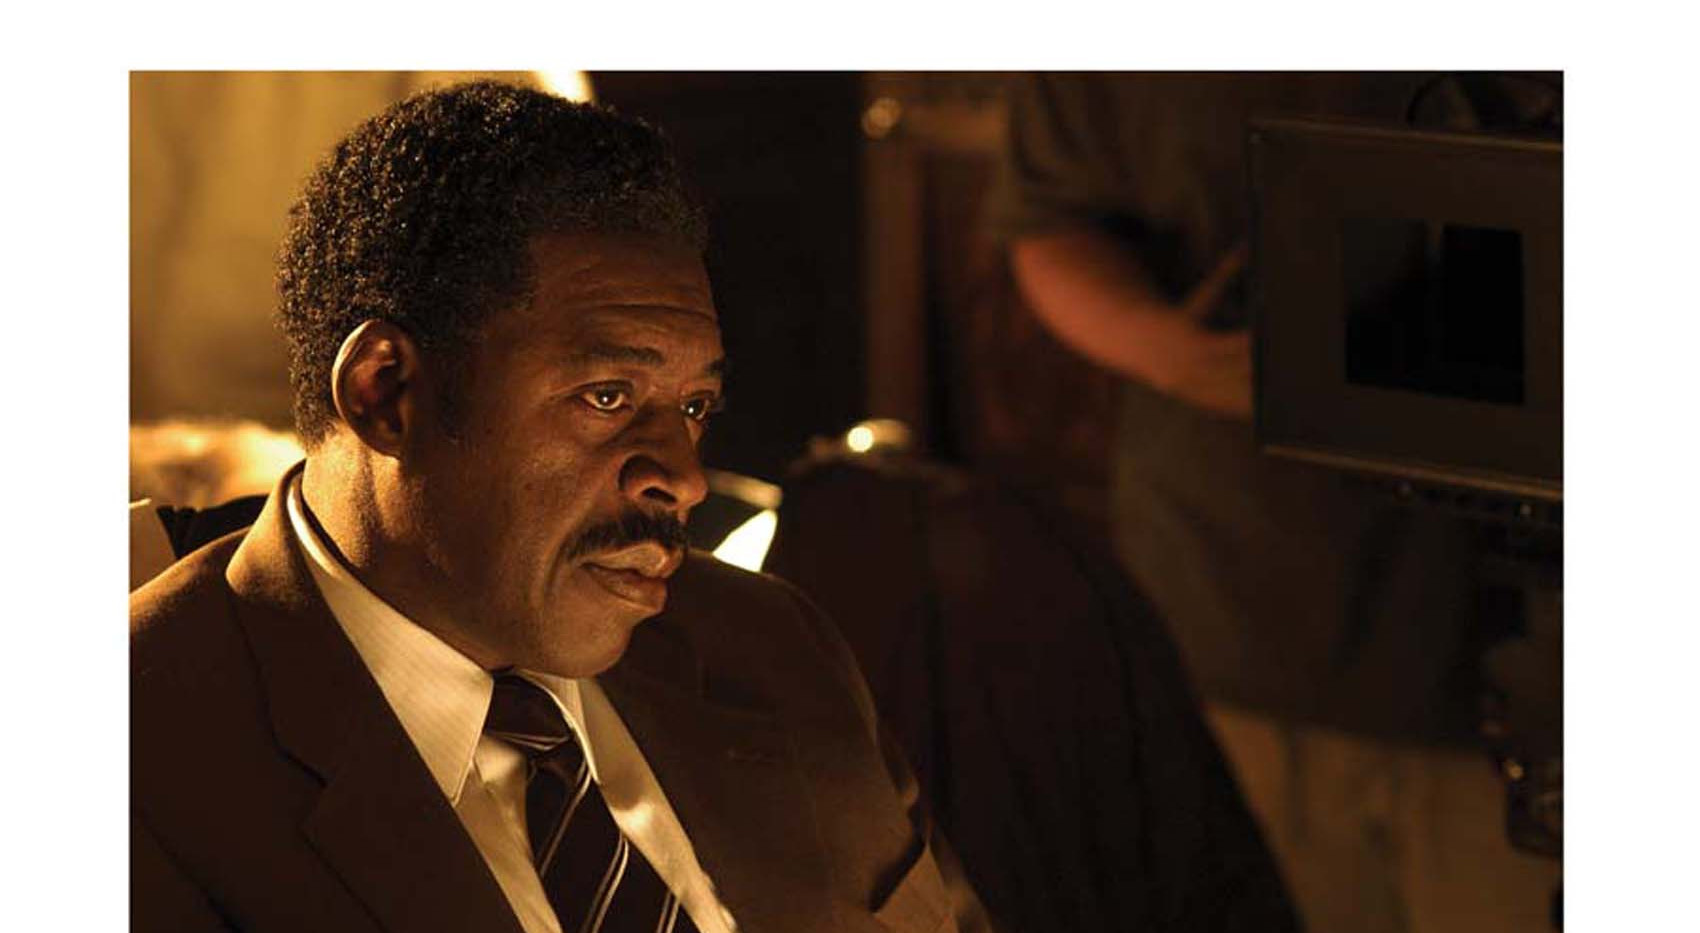 Ernie Hudson in Man in the Silo